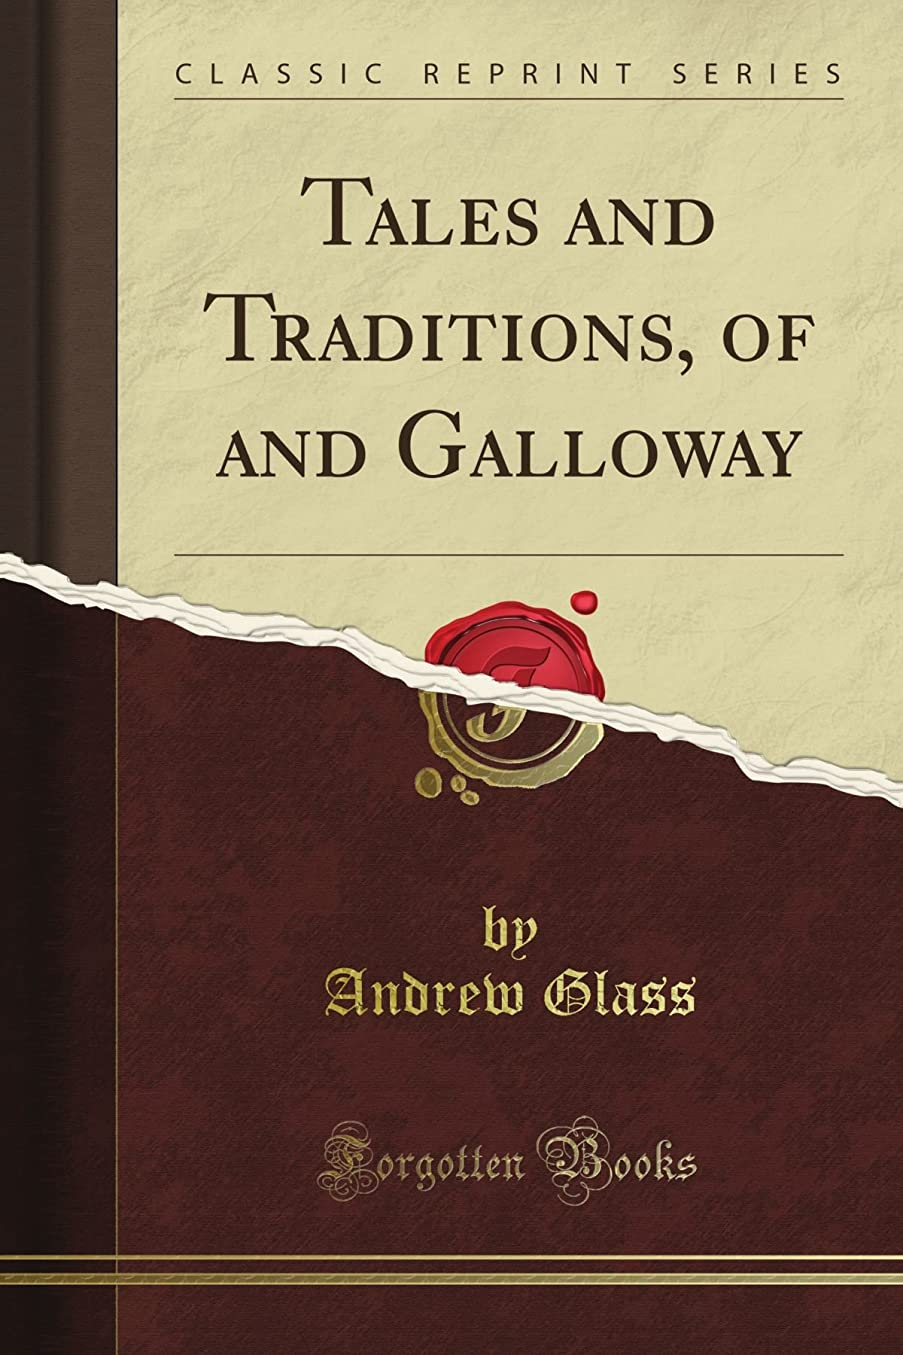 追うストライド競合他社選手Tales and Traditions, of and Galloway (Classic Reprint)